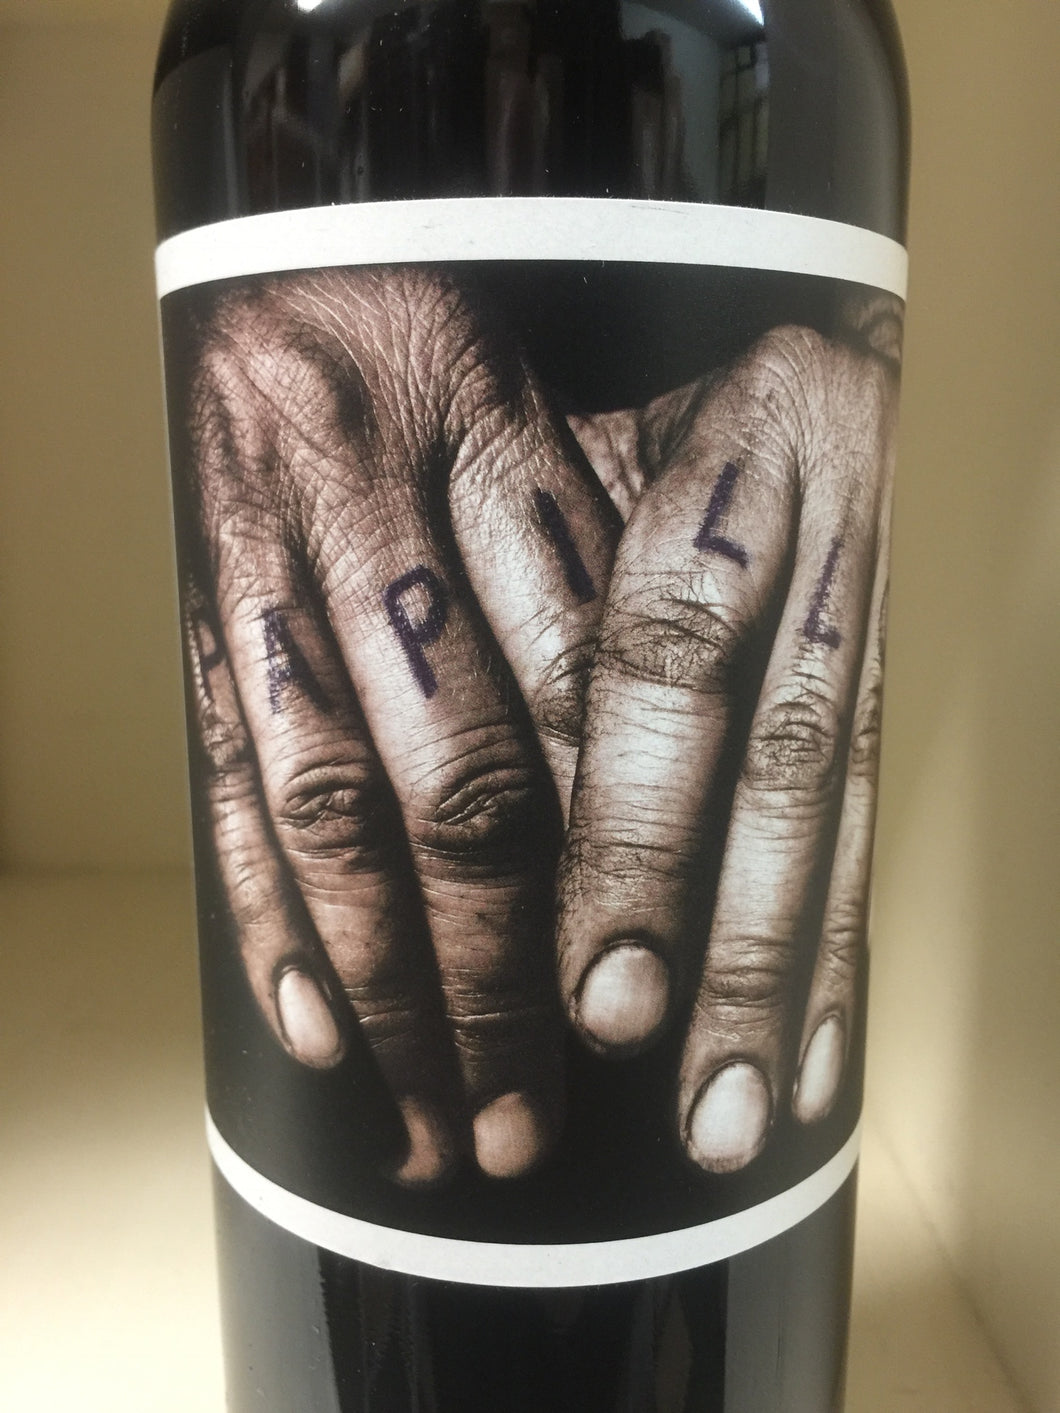 2014 Orin Swift